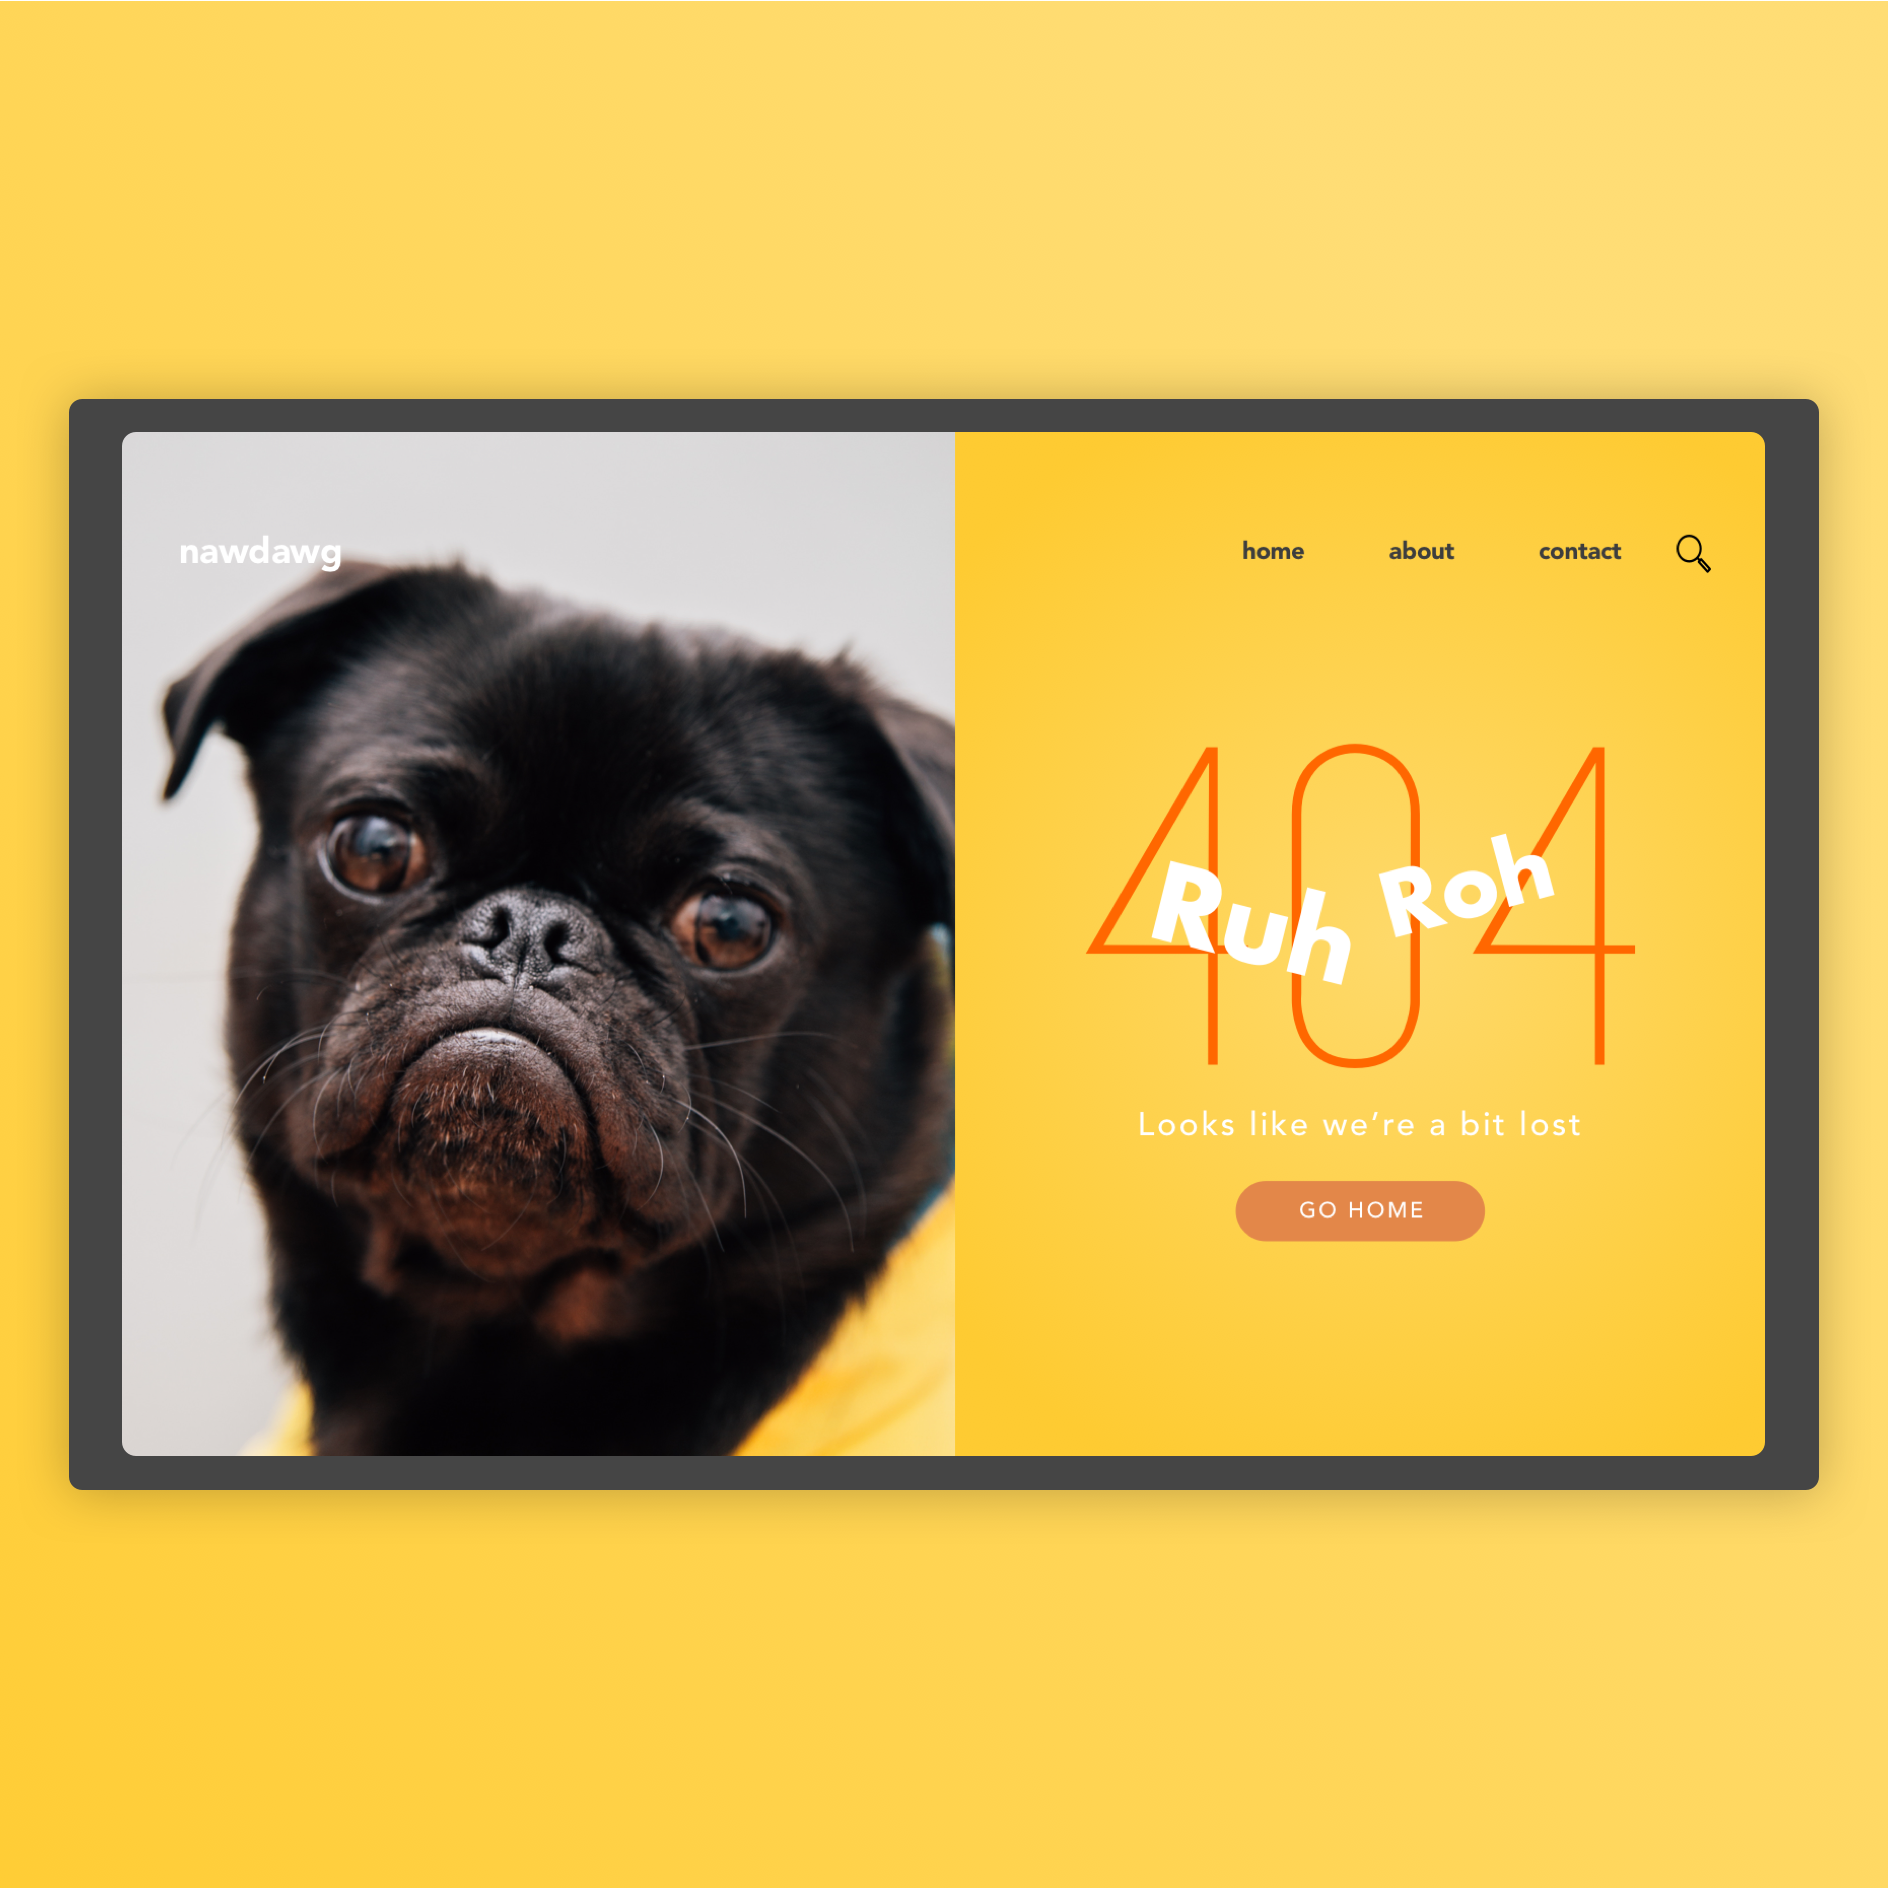 Daily UI Puppy Instagram 404.png